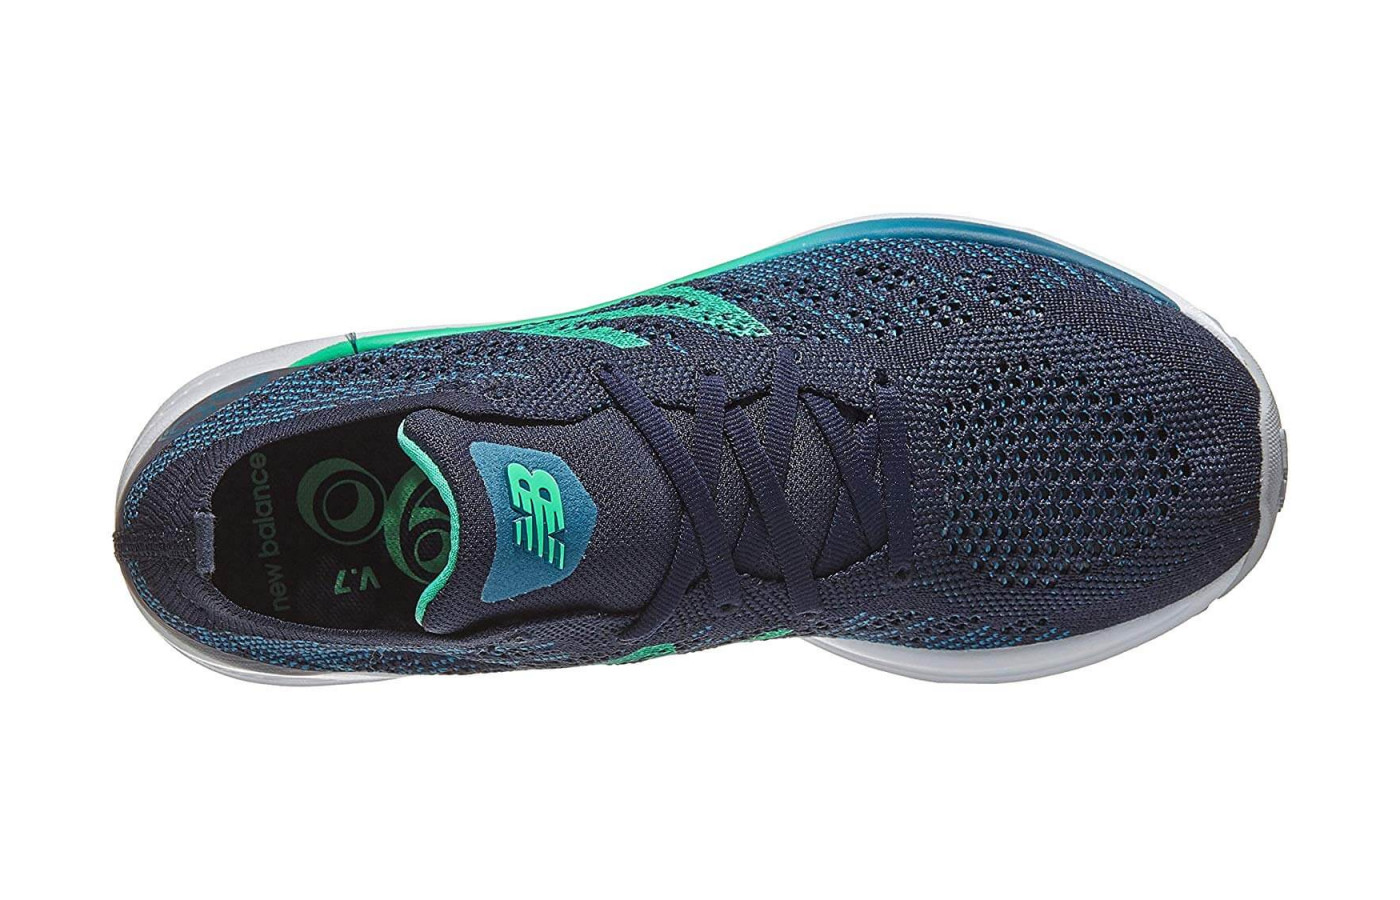 The 890v7's upper is made from an engineered knit.